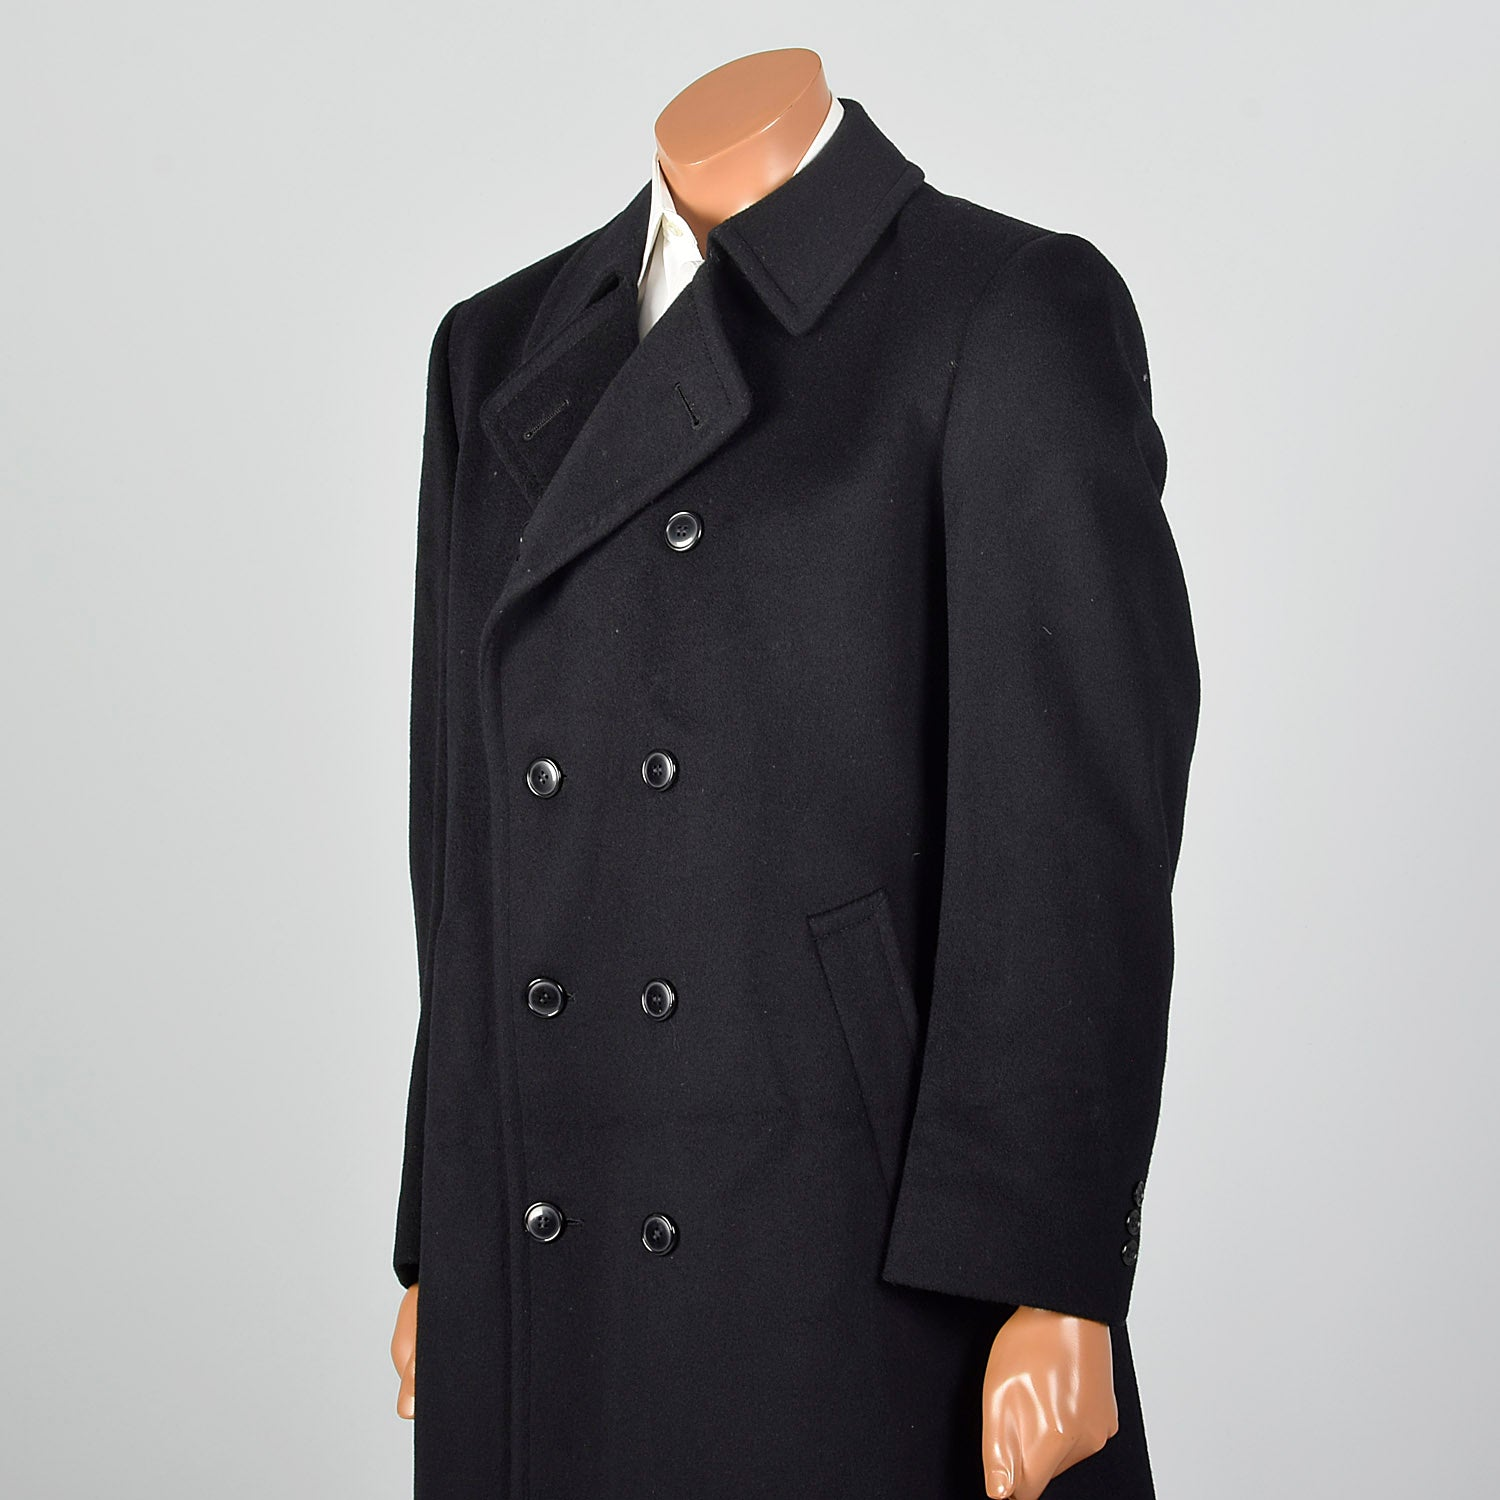 1980s Black Wool Heavy Overcoat